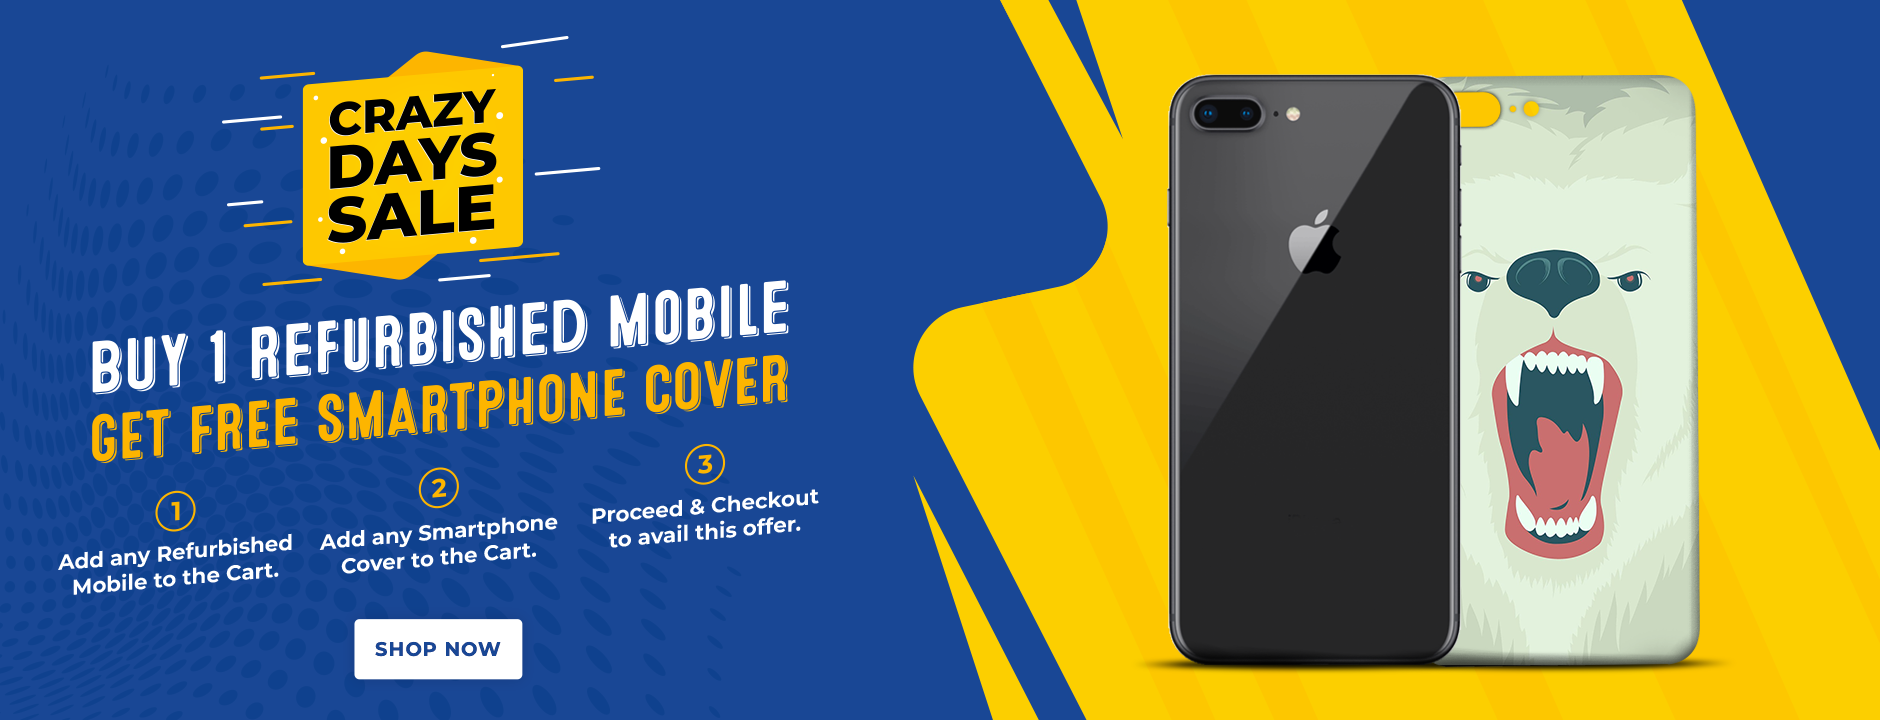 Cashify Store Crazy deal Days - Buy one refurbished mobile and get FREE smartphone cover